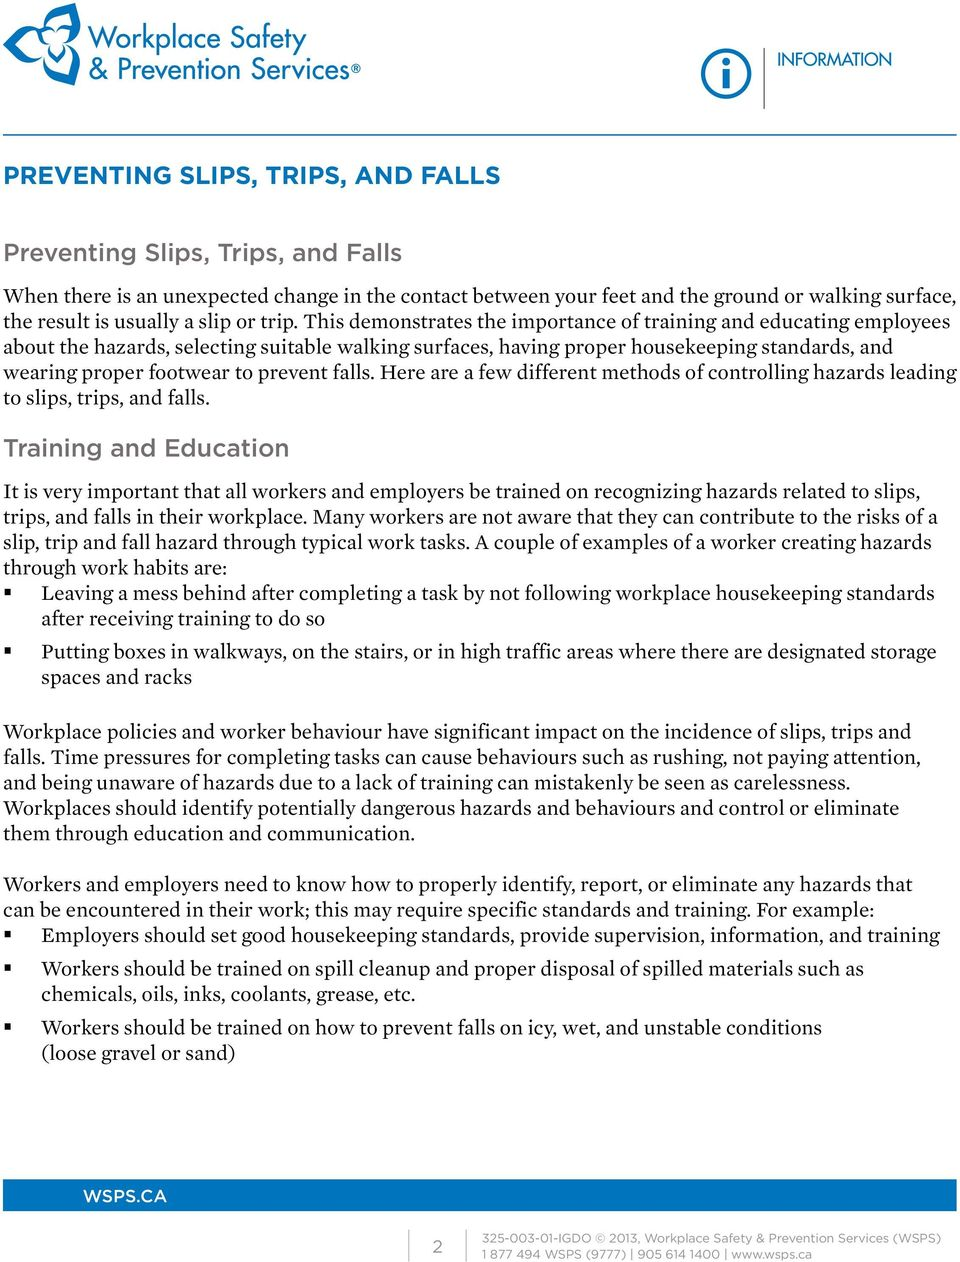 prevent falls. Here are a few different methods of controlling hazards leading to slips, trips, and falls.